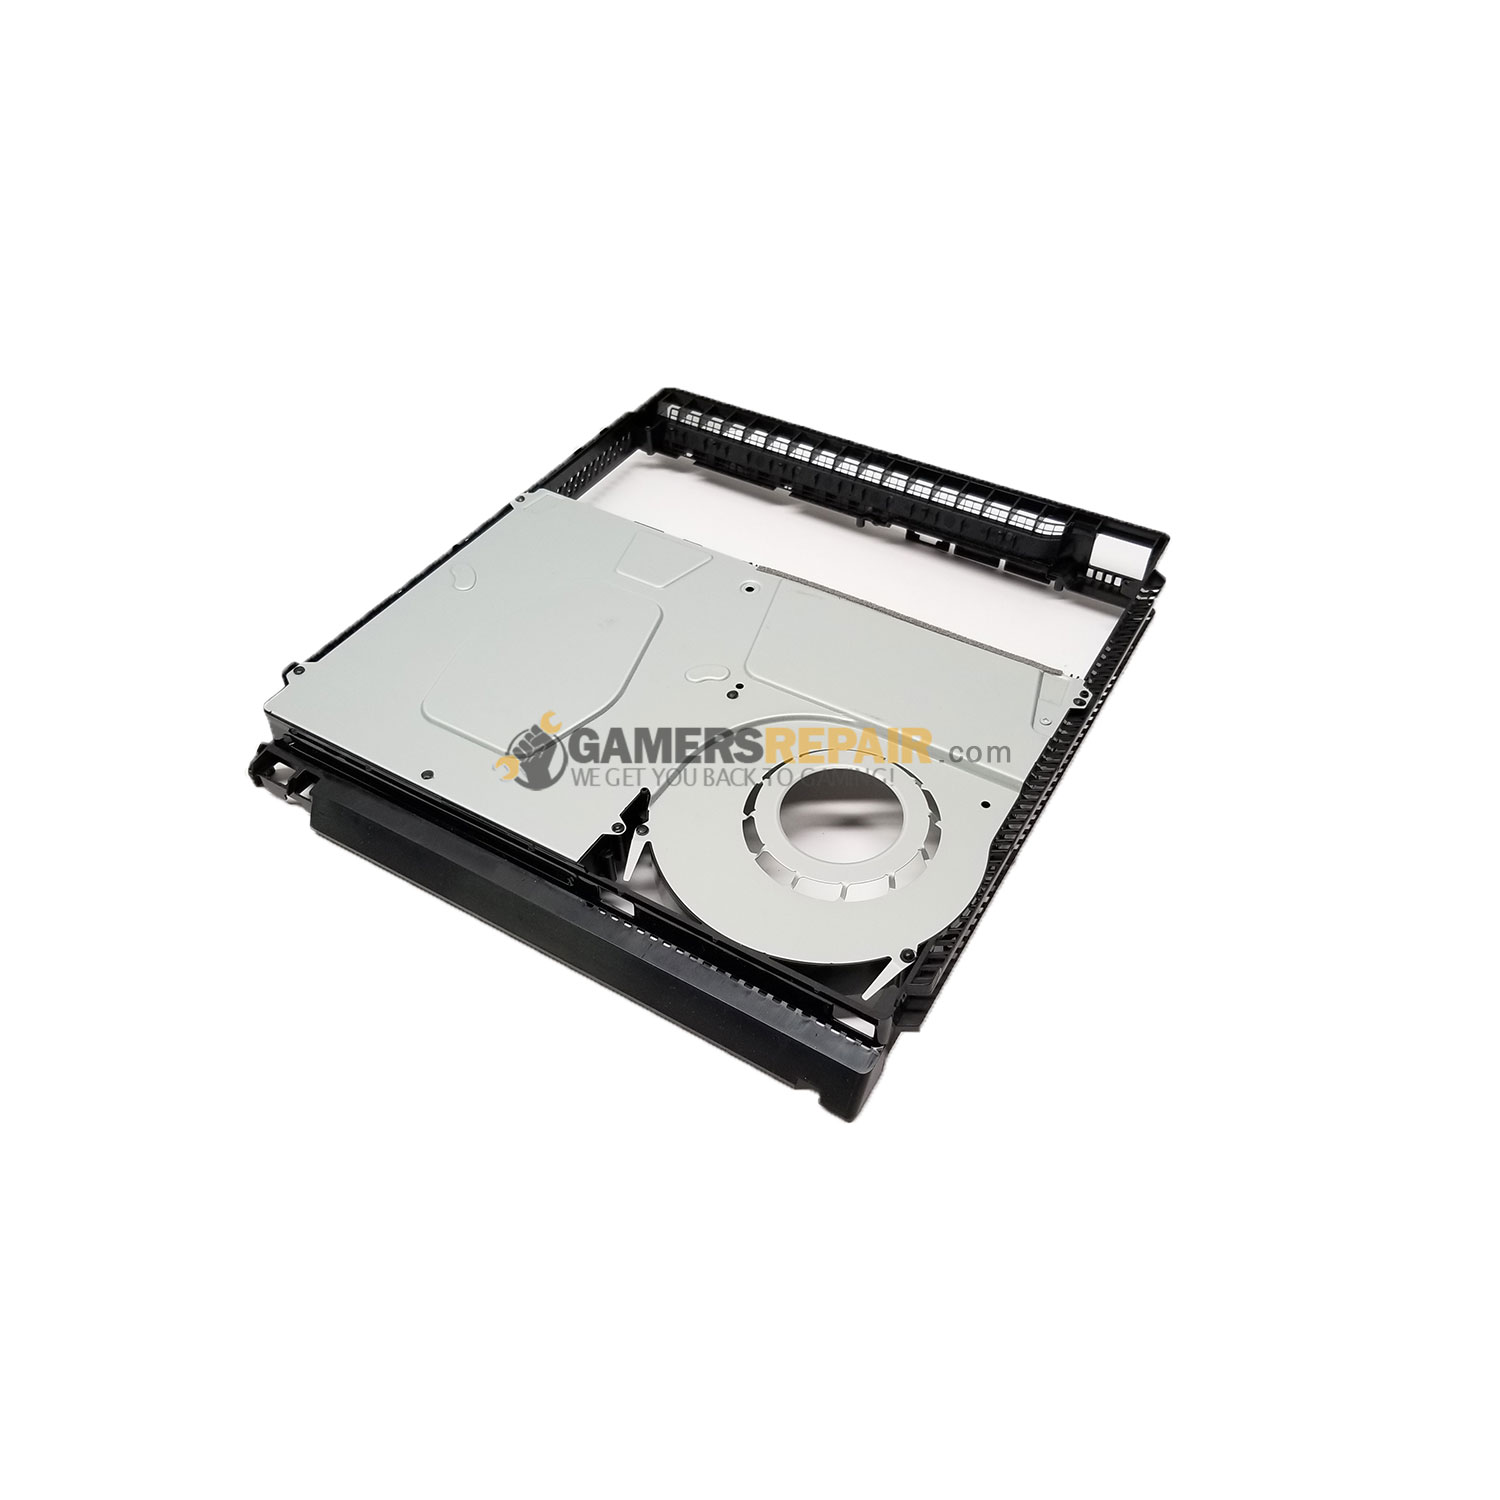 ps4-slim-2115-inner-housing-frame-1.jpg